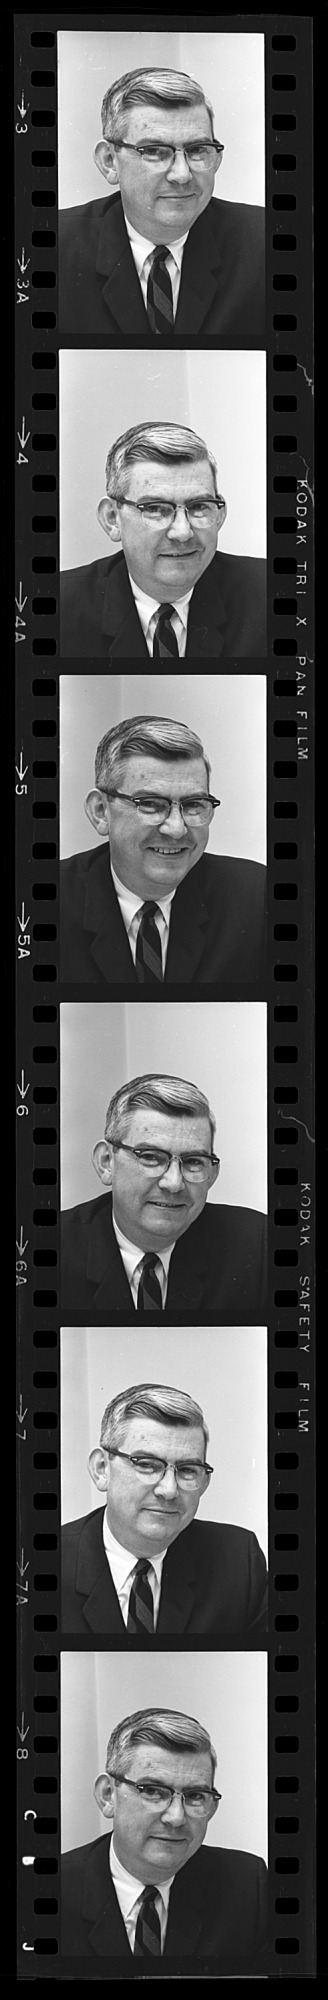 Portrait of Charles L. Clapp, 1967, Smithsonian Institution Archives, SIA Acc. 11-008 [OPA-2].